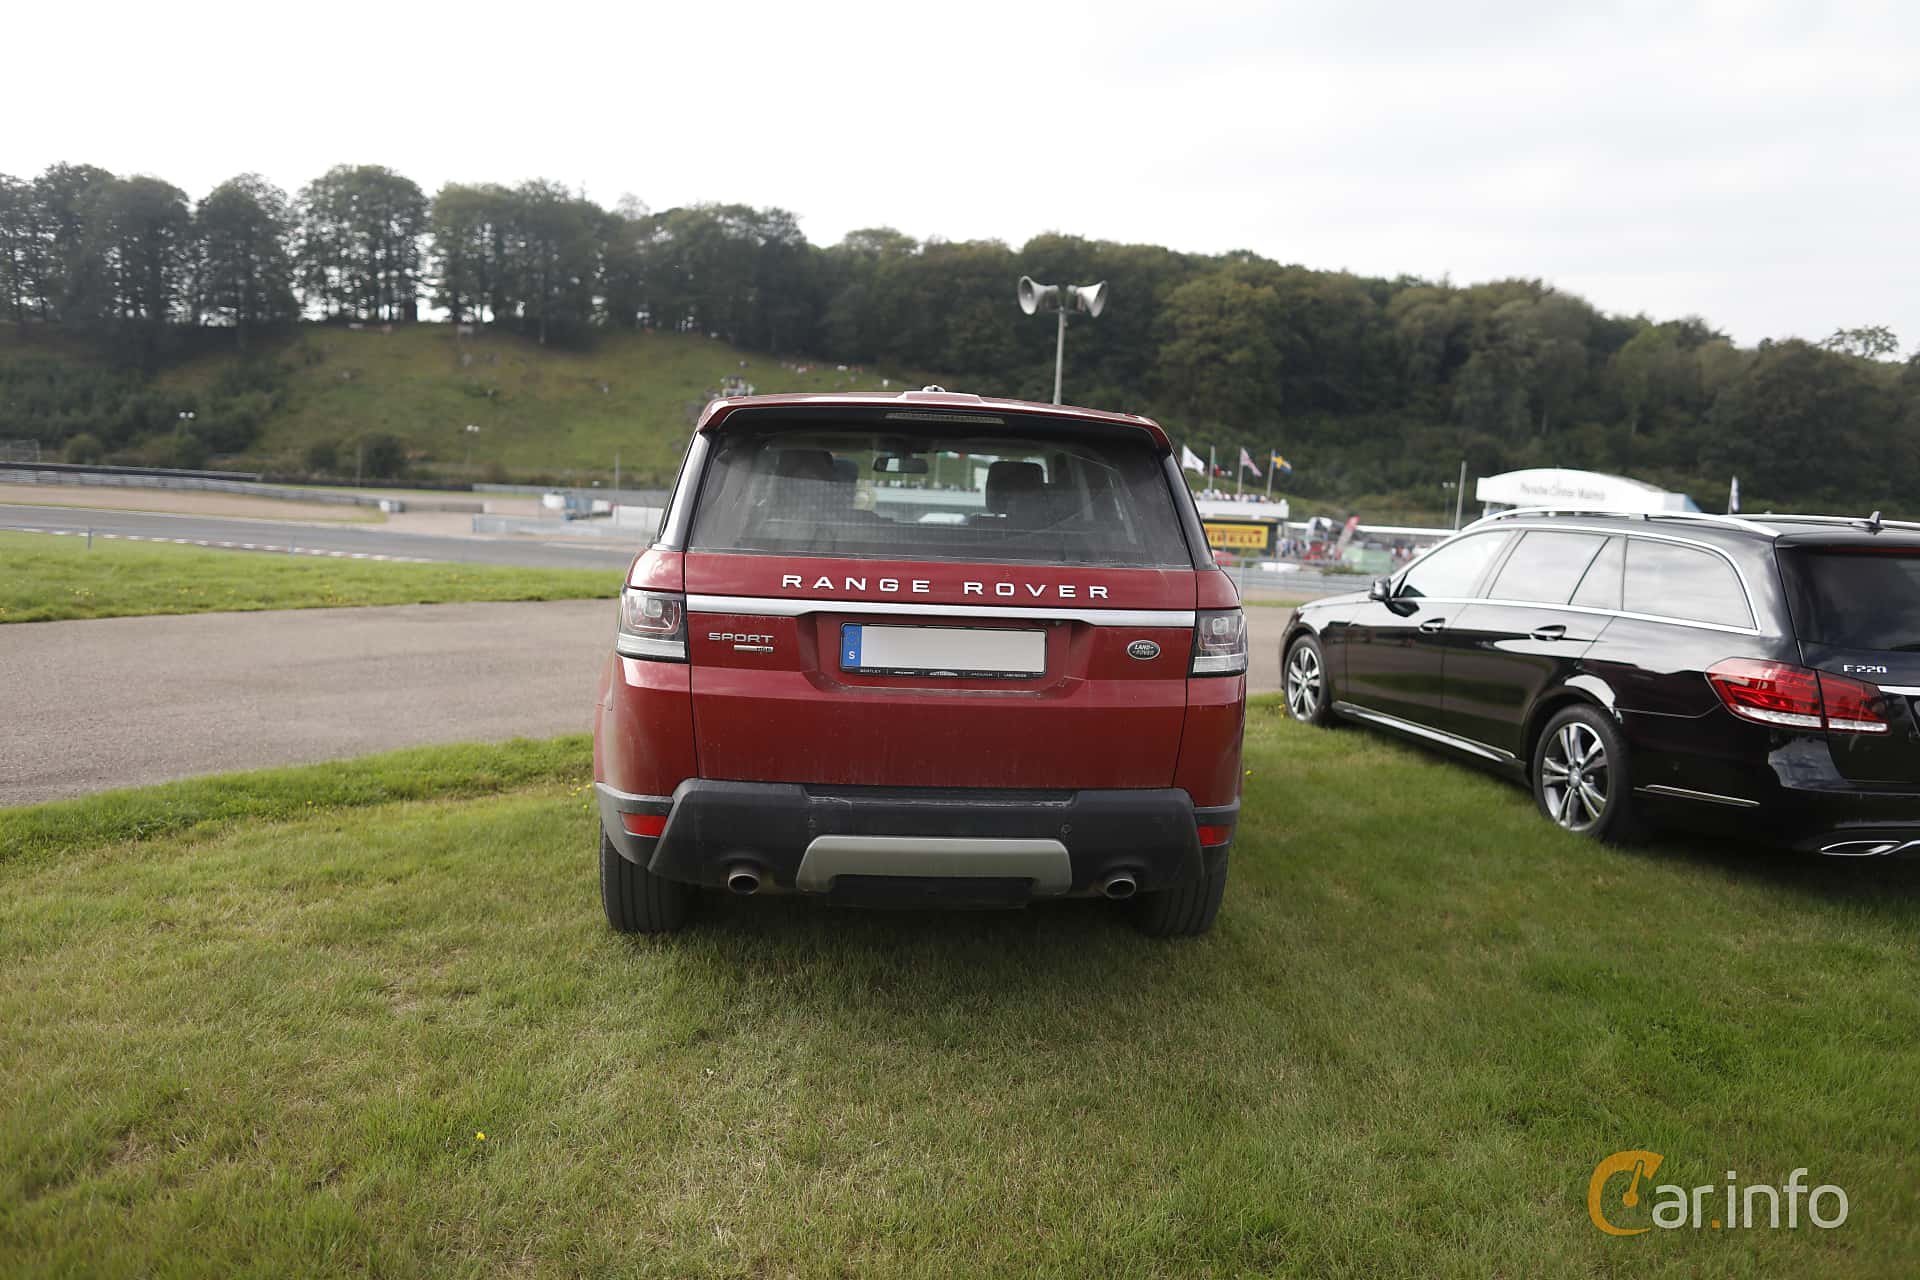 Land Rover Range Rover Sport 3.0 TDV6 4WD Automatic, 258hp, 2016 at Autoropa Racing day Knutstorp 2019